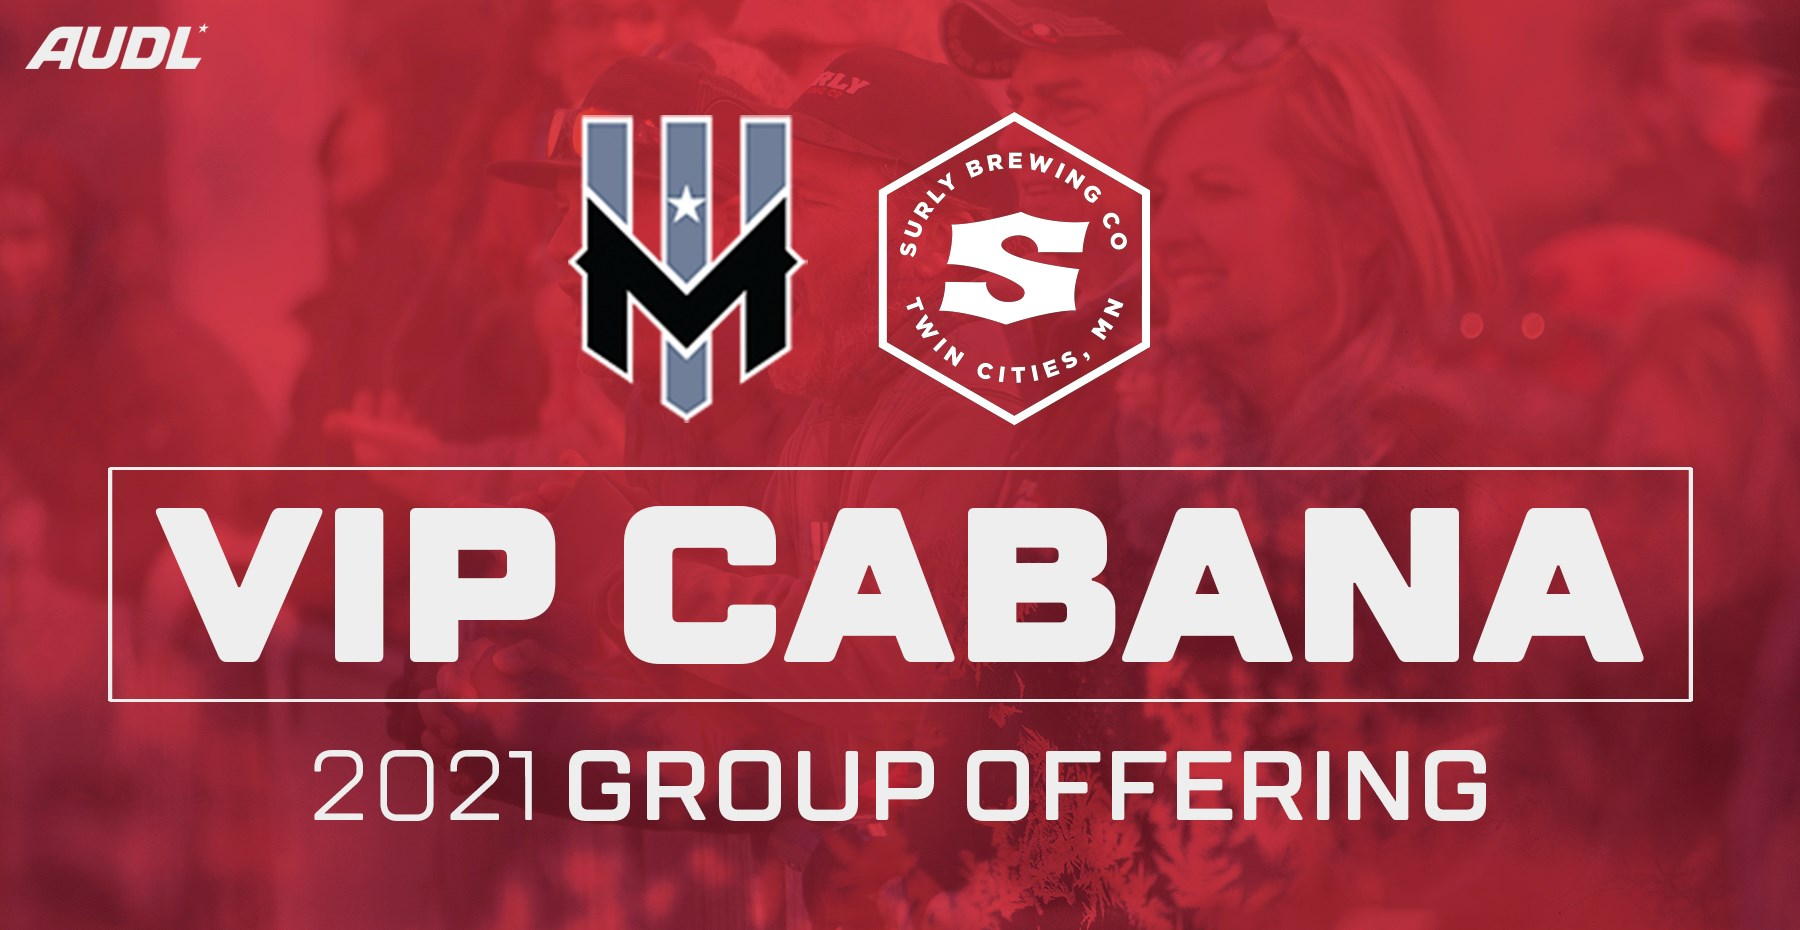 Surly VIP Cabana Experience 2021 - 12+ People